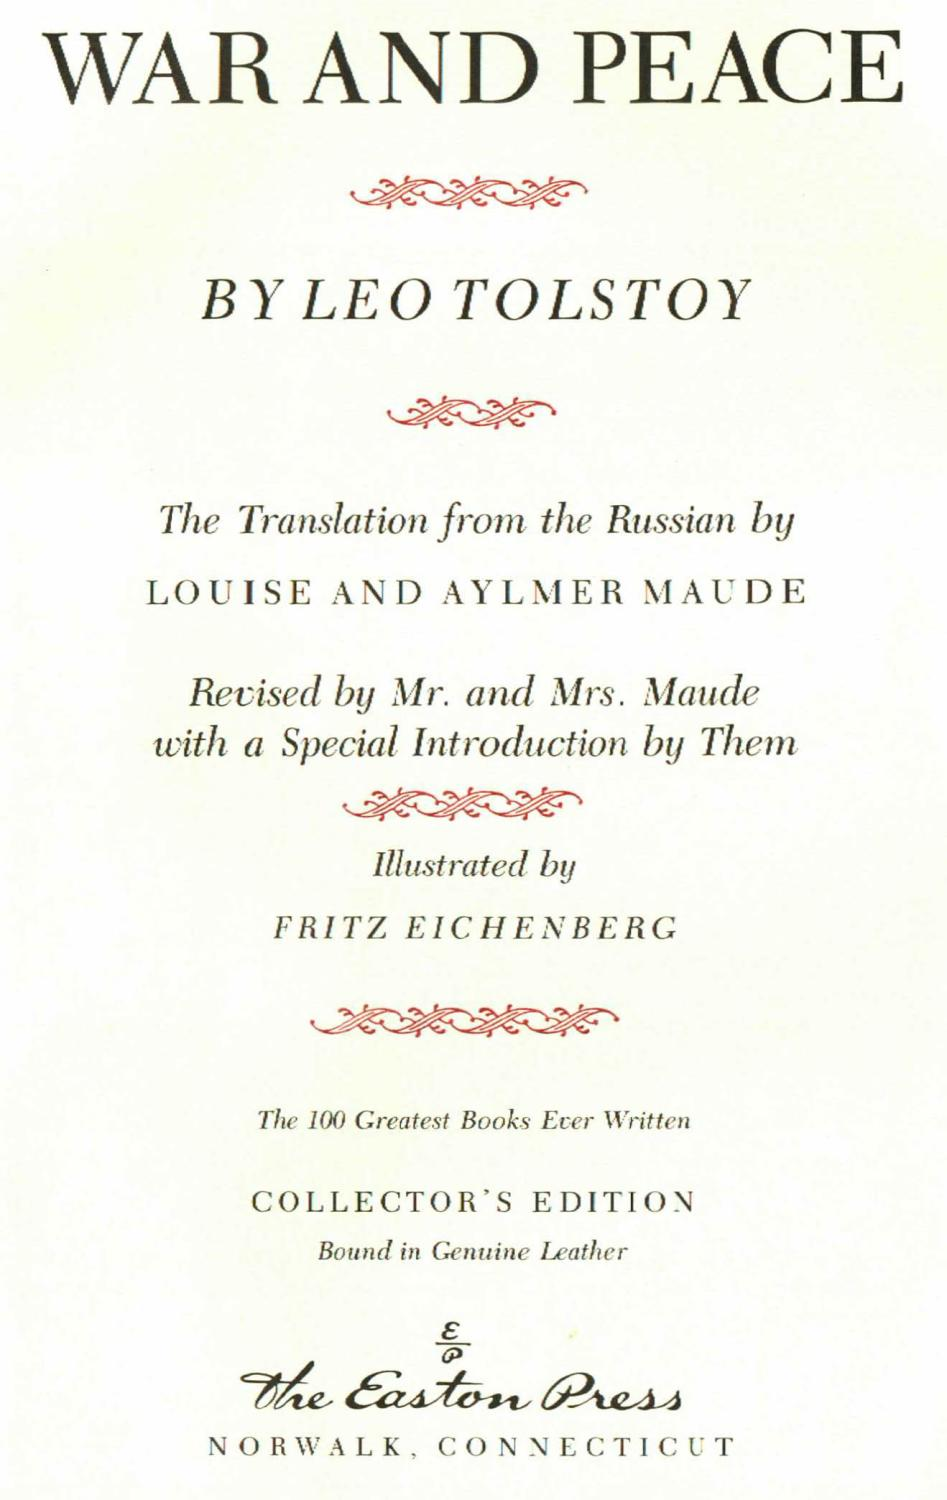 war and peace by leo tolstoy New bbc tv tie-in edition of the original masterpiece by leo tolstoy, with an  of tolstoy's enthralling epic war and peace is due to appear on our screens.